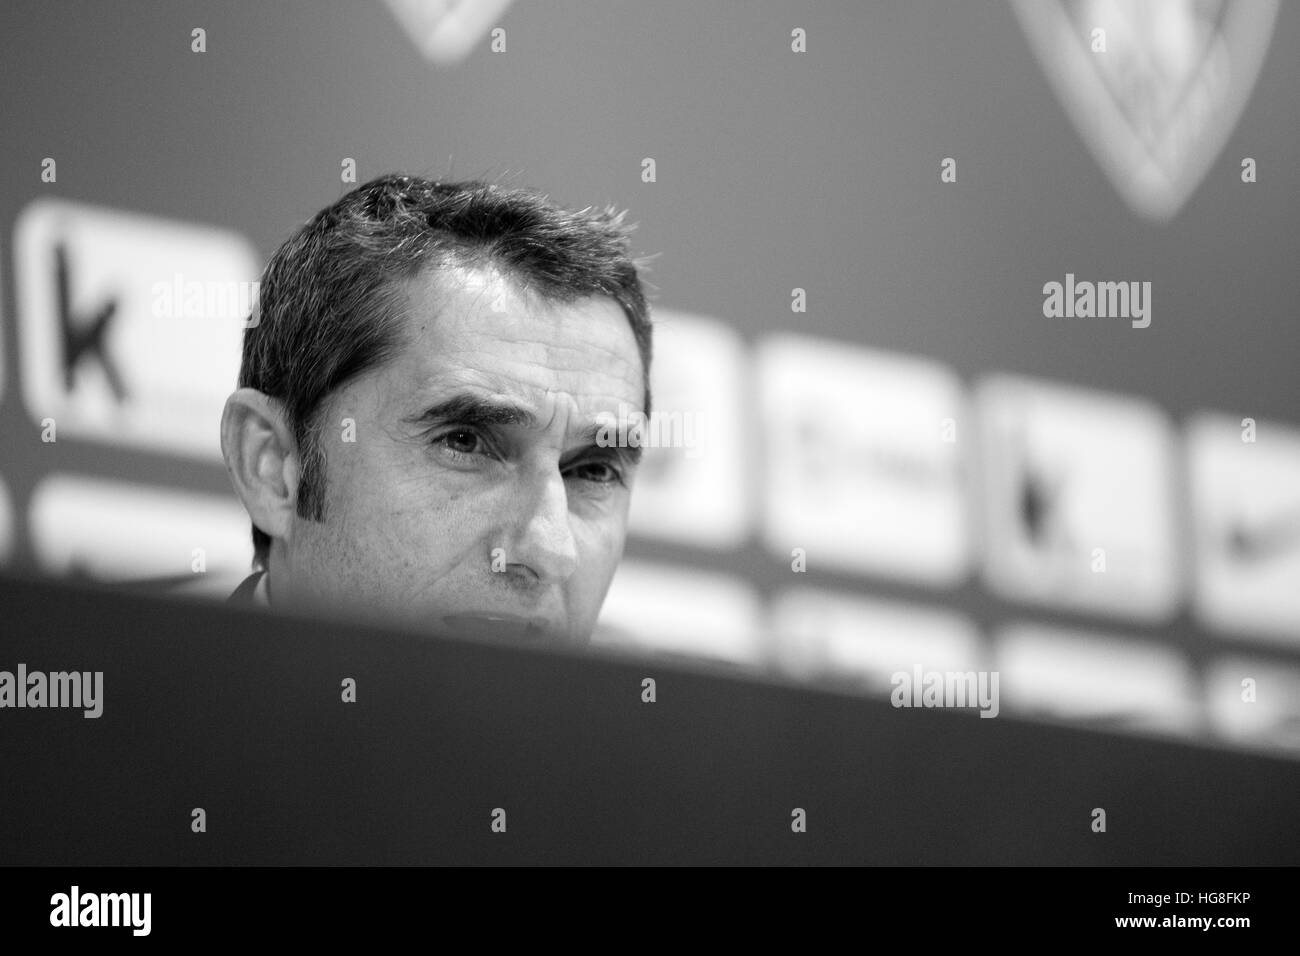 Bilbao, Spain. 5th January, 2017. Ernesto Valverde (Coach, Athletic Club) during the press conference of football - Stock Image